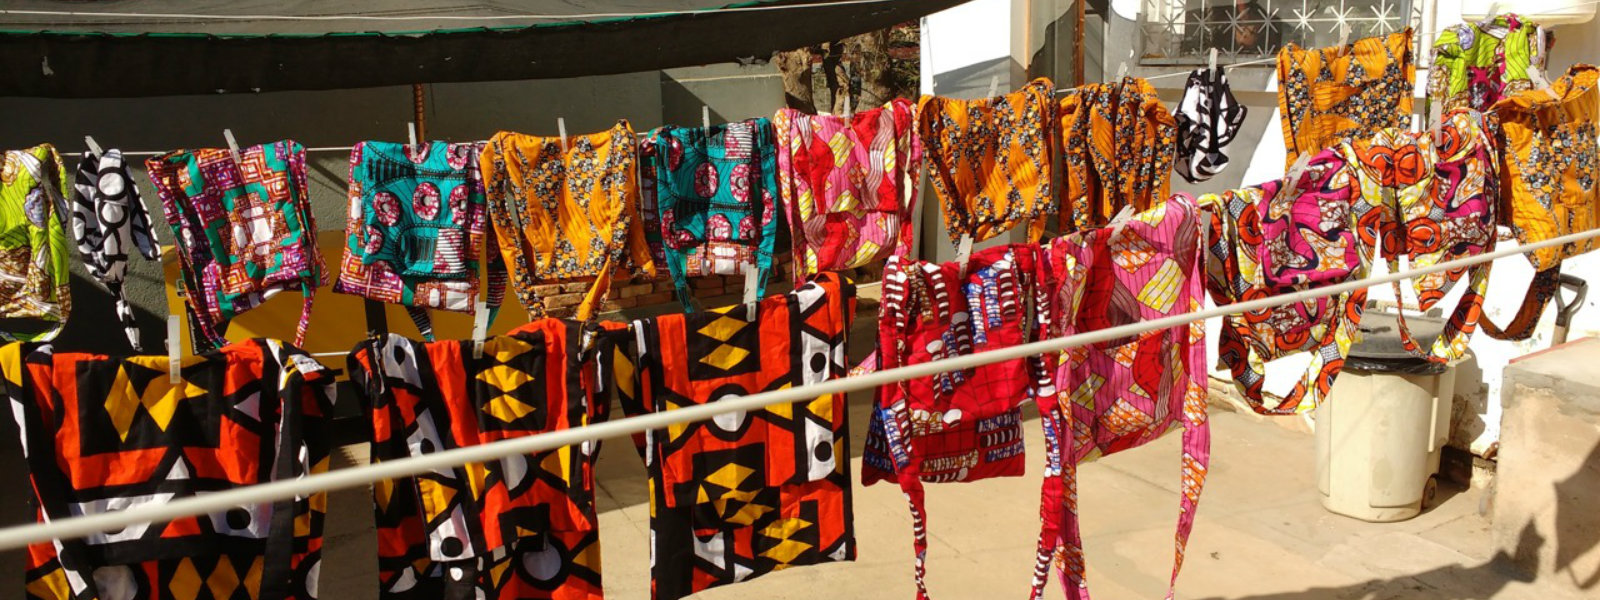 Clotheslines with colorful handmade bags, Hope for Our Sisters